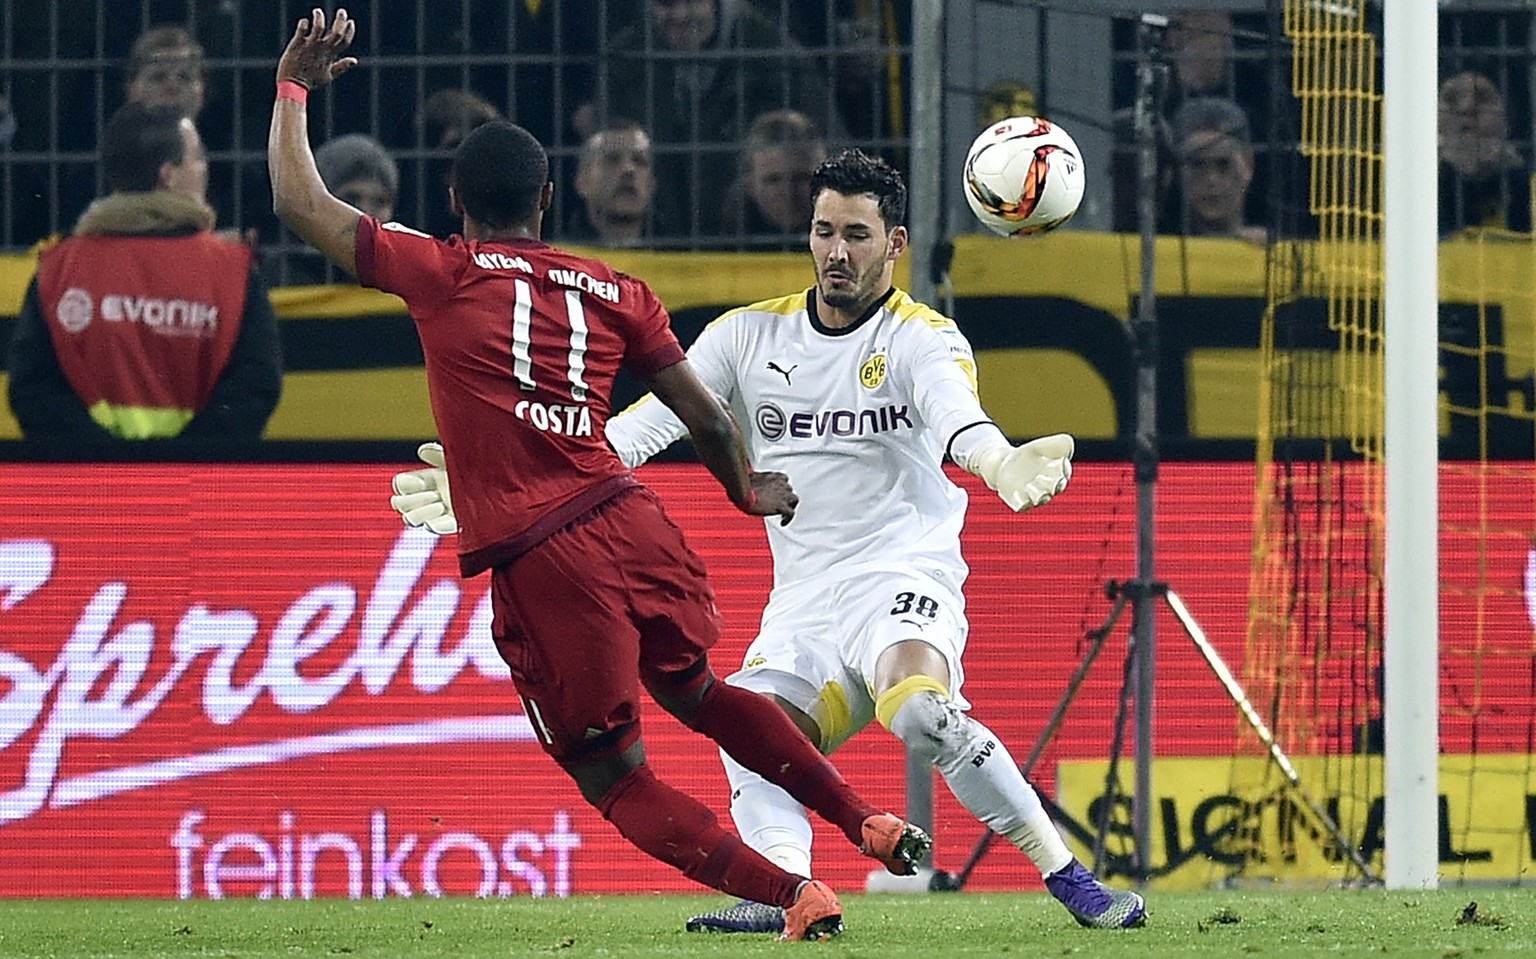 Dortmund's goalkeeper Roman Buerki, right, catches a ball from Bayern's Douglas Costa during the German Bundesliga soccer match between Borussia Dortmund and Bayern Munich, in Dortmund, Germany, Saturday, March 5, 2016. (AP Photo/Martin Meissner)